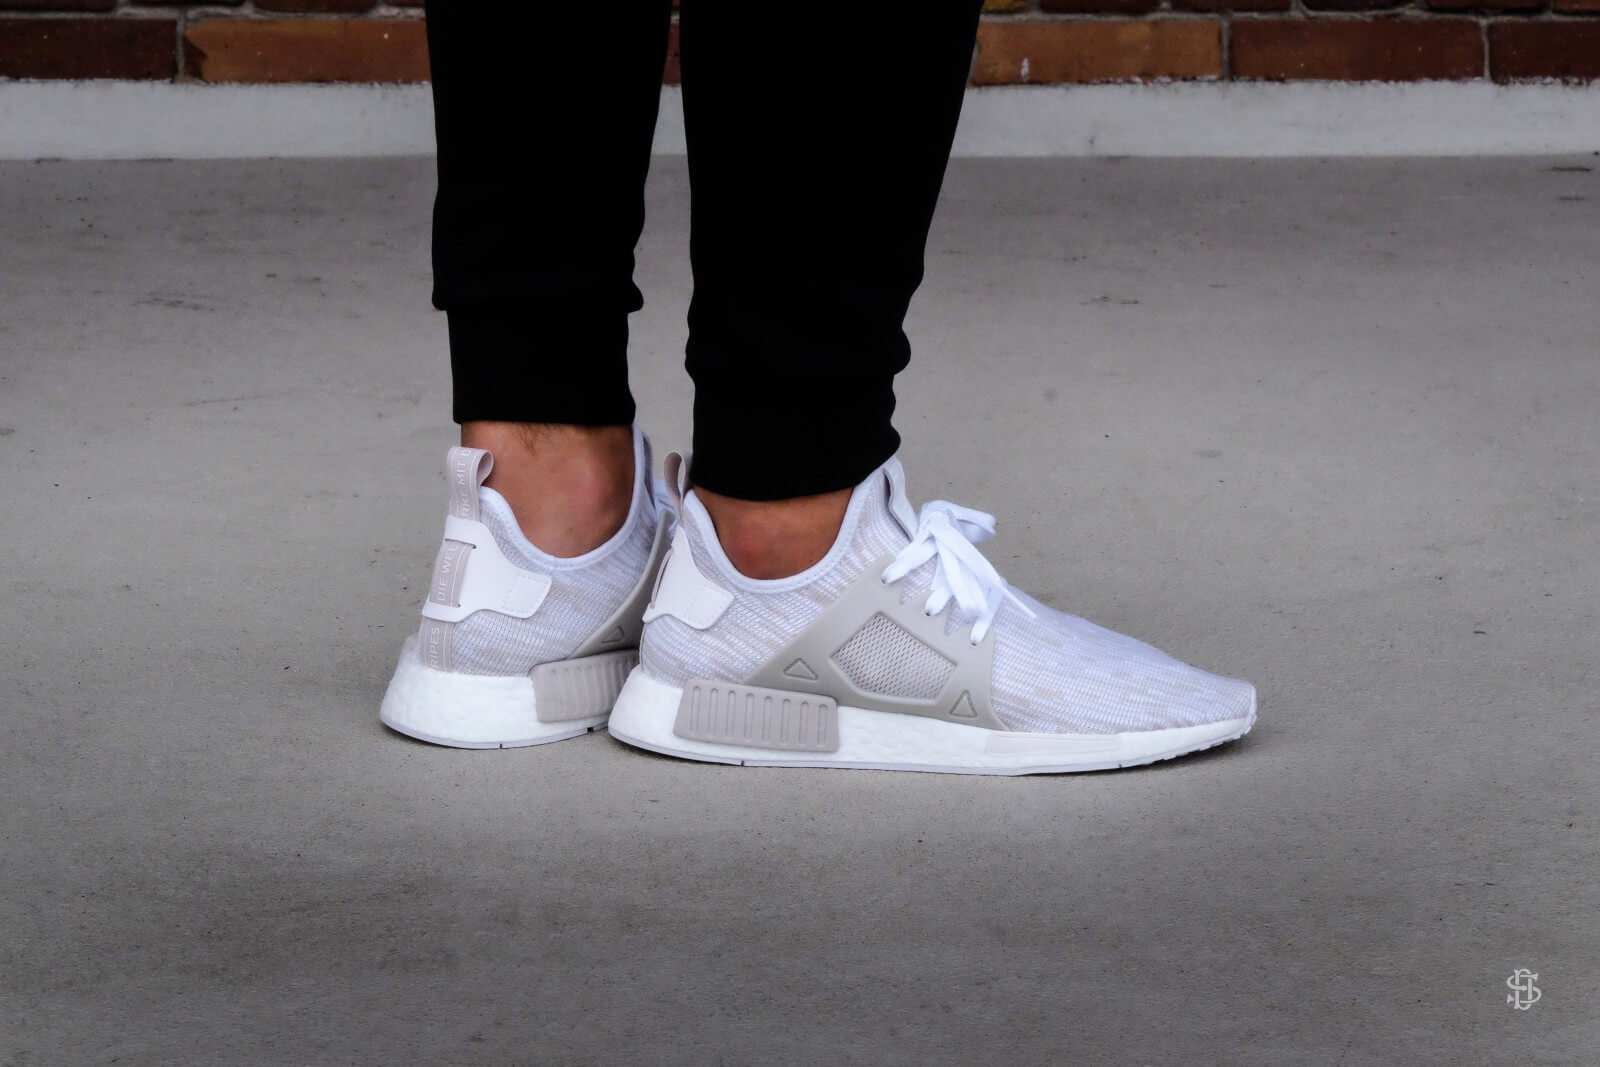 Adidas NMD _XR1 PK White Camo Real vs Fake